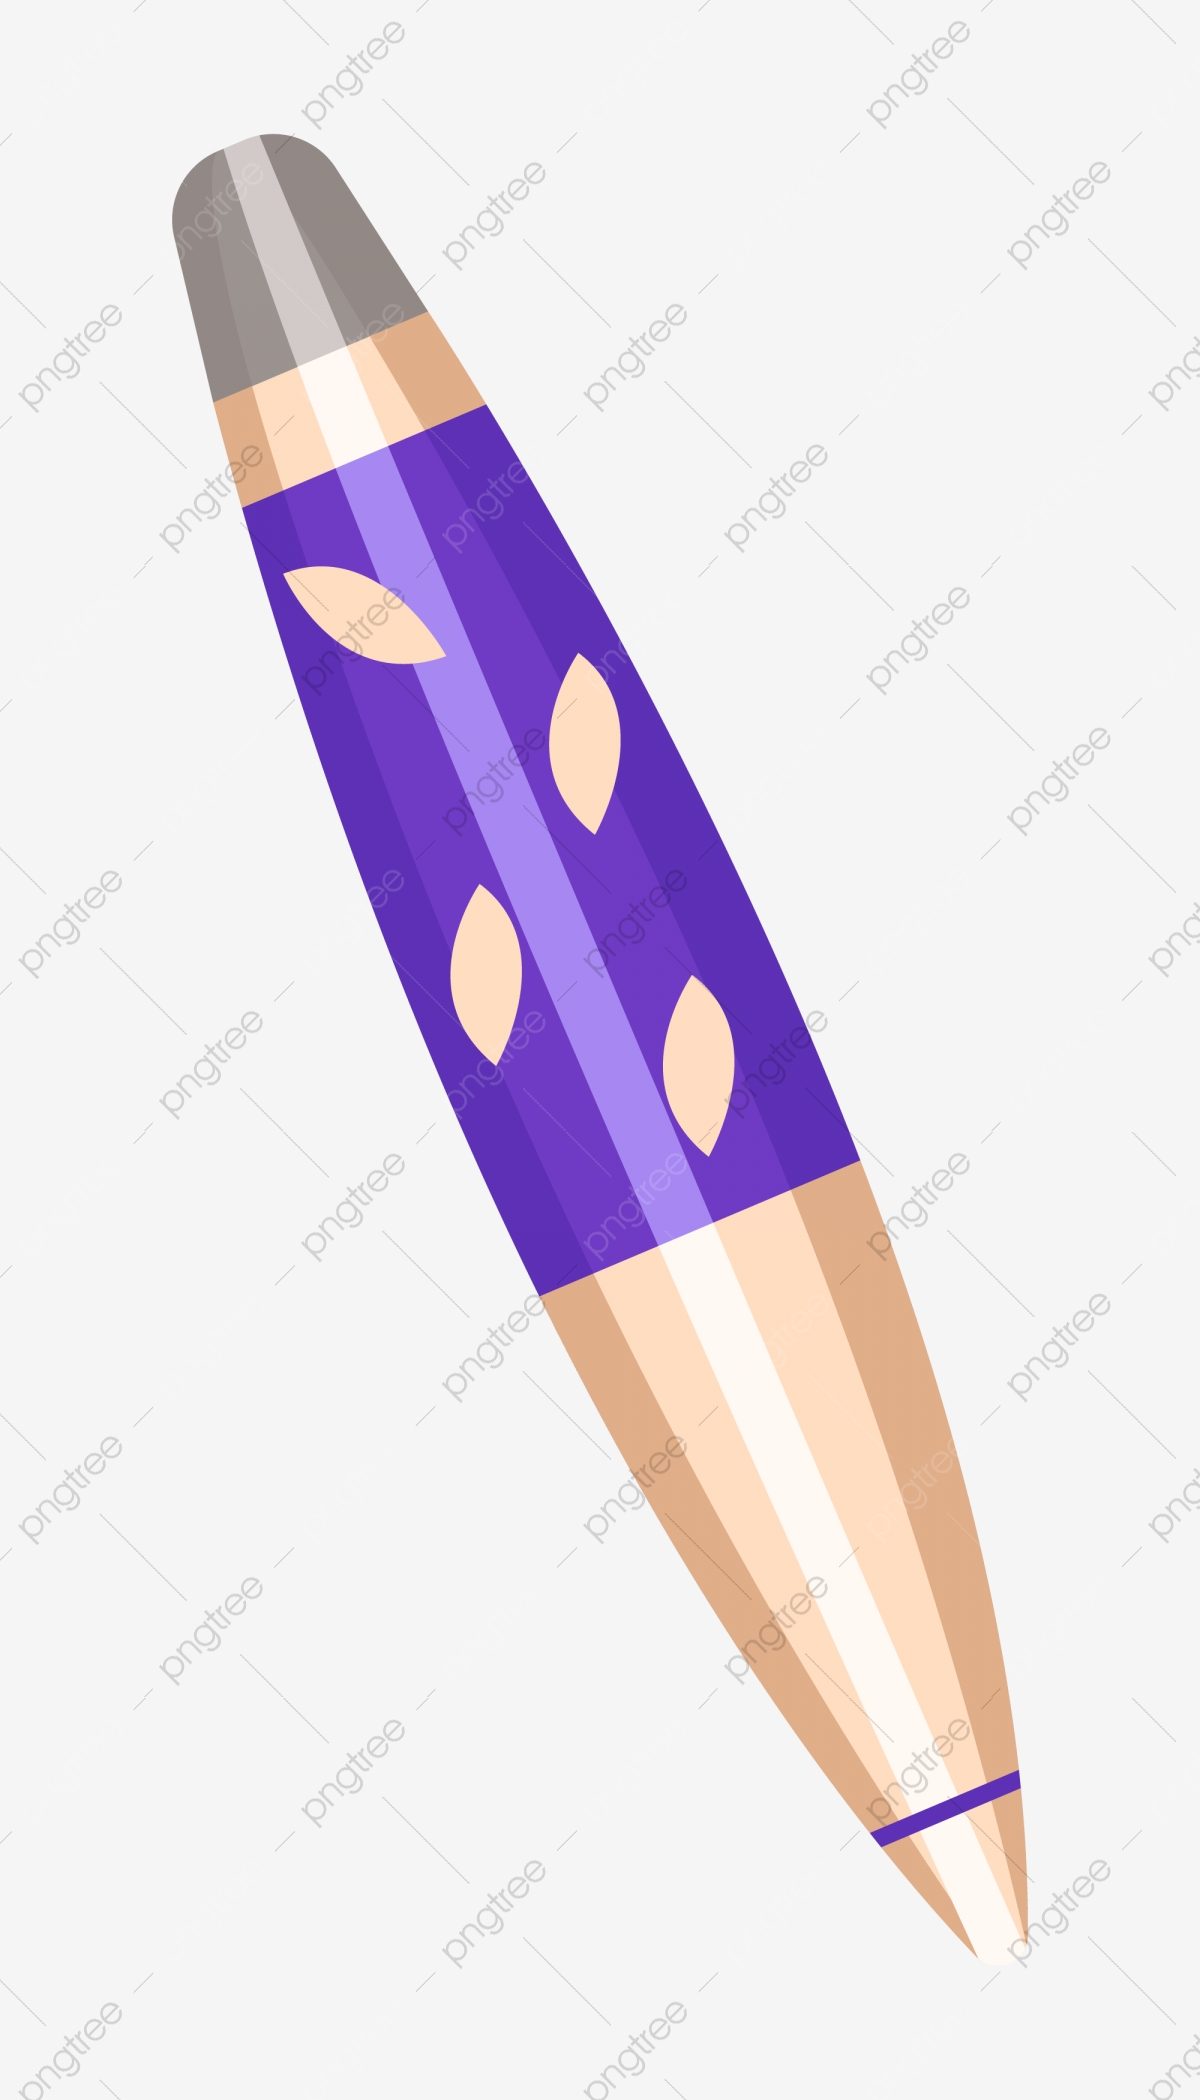 cute fat climbing pen illustration pen purple pen fat pen png and vector with transparent background for free download https pngtree com freepng cute fat climbing pen illustration 4598525 html